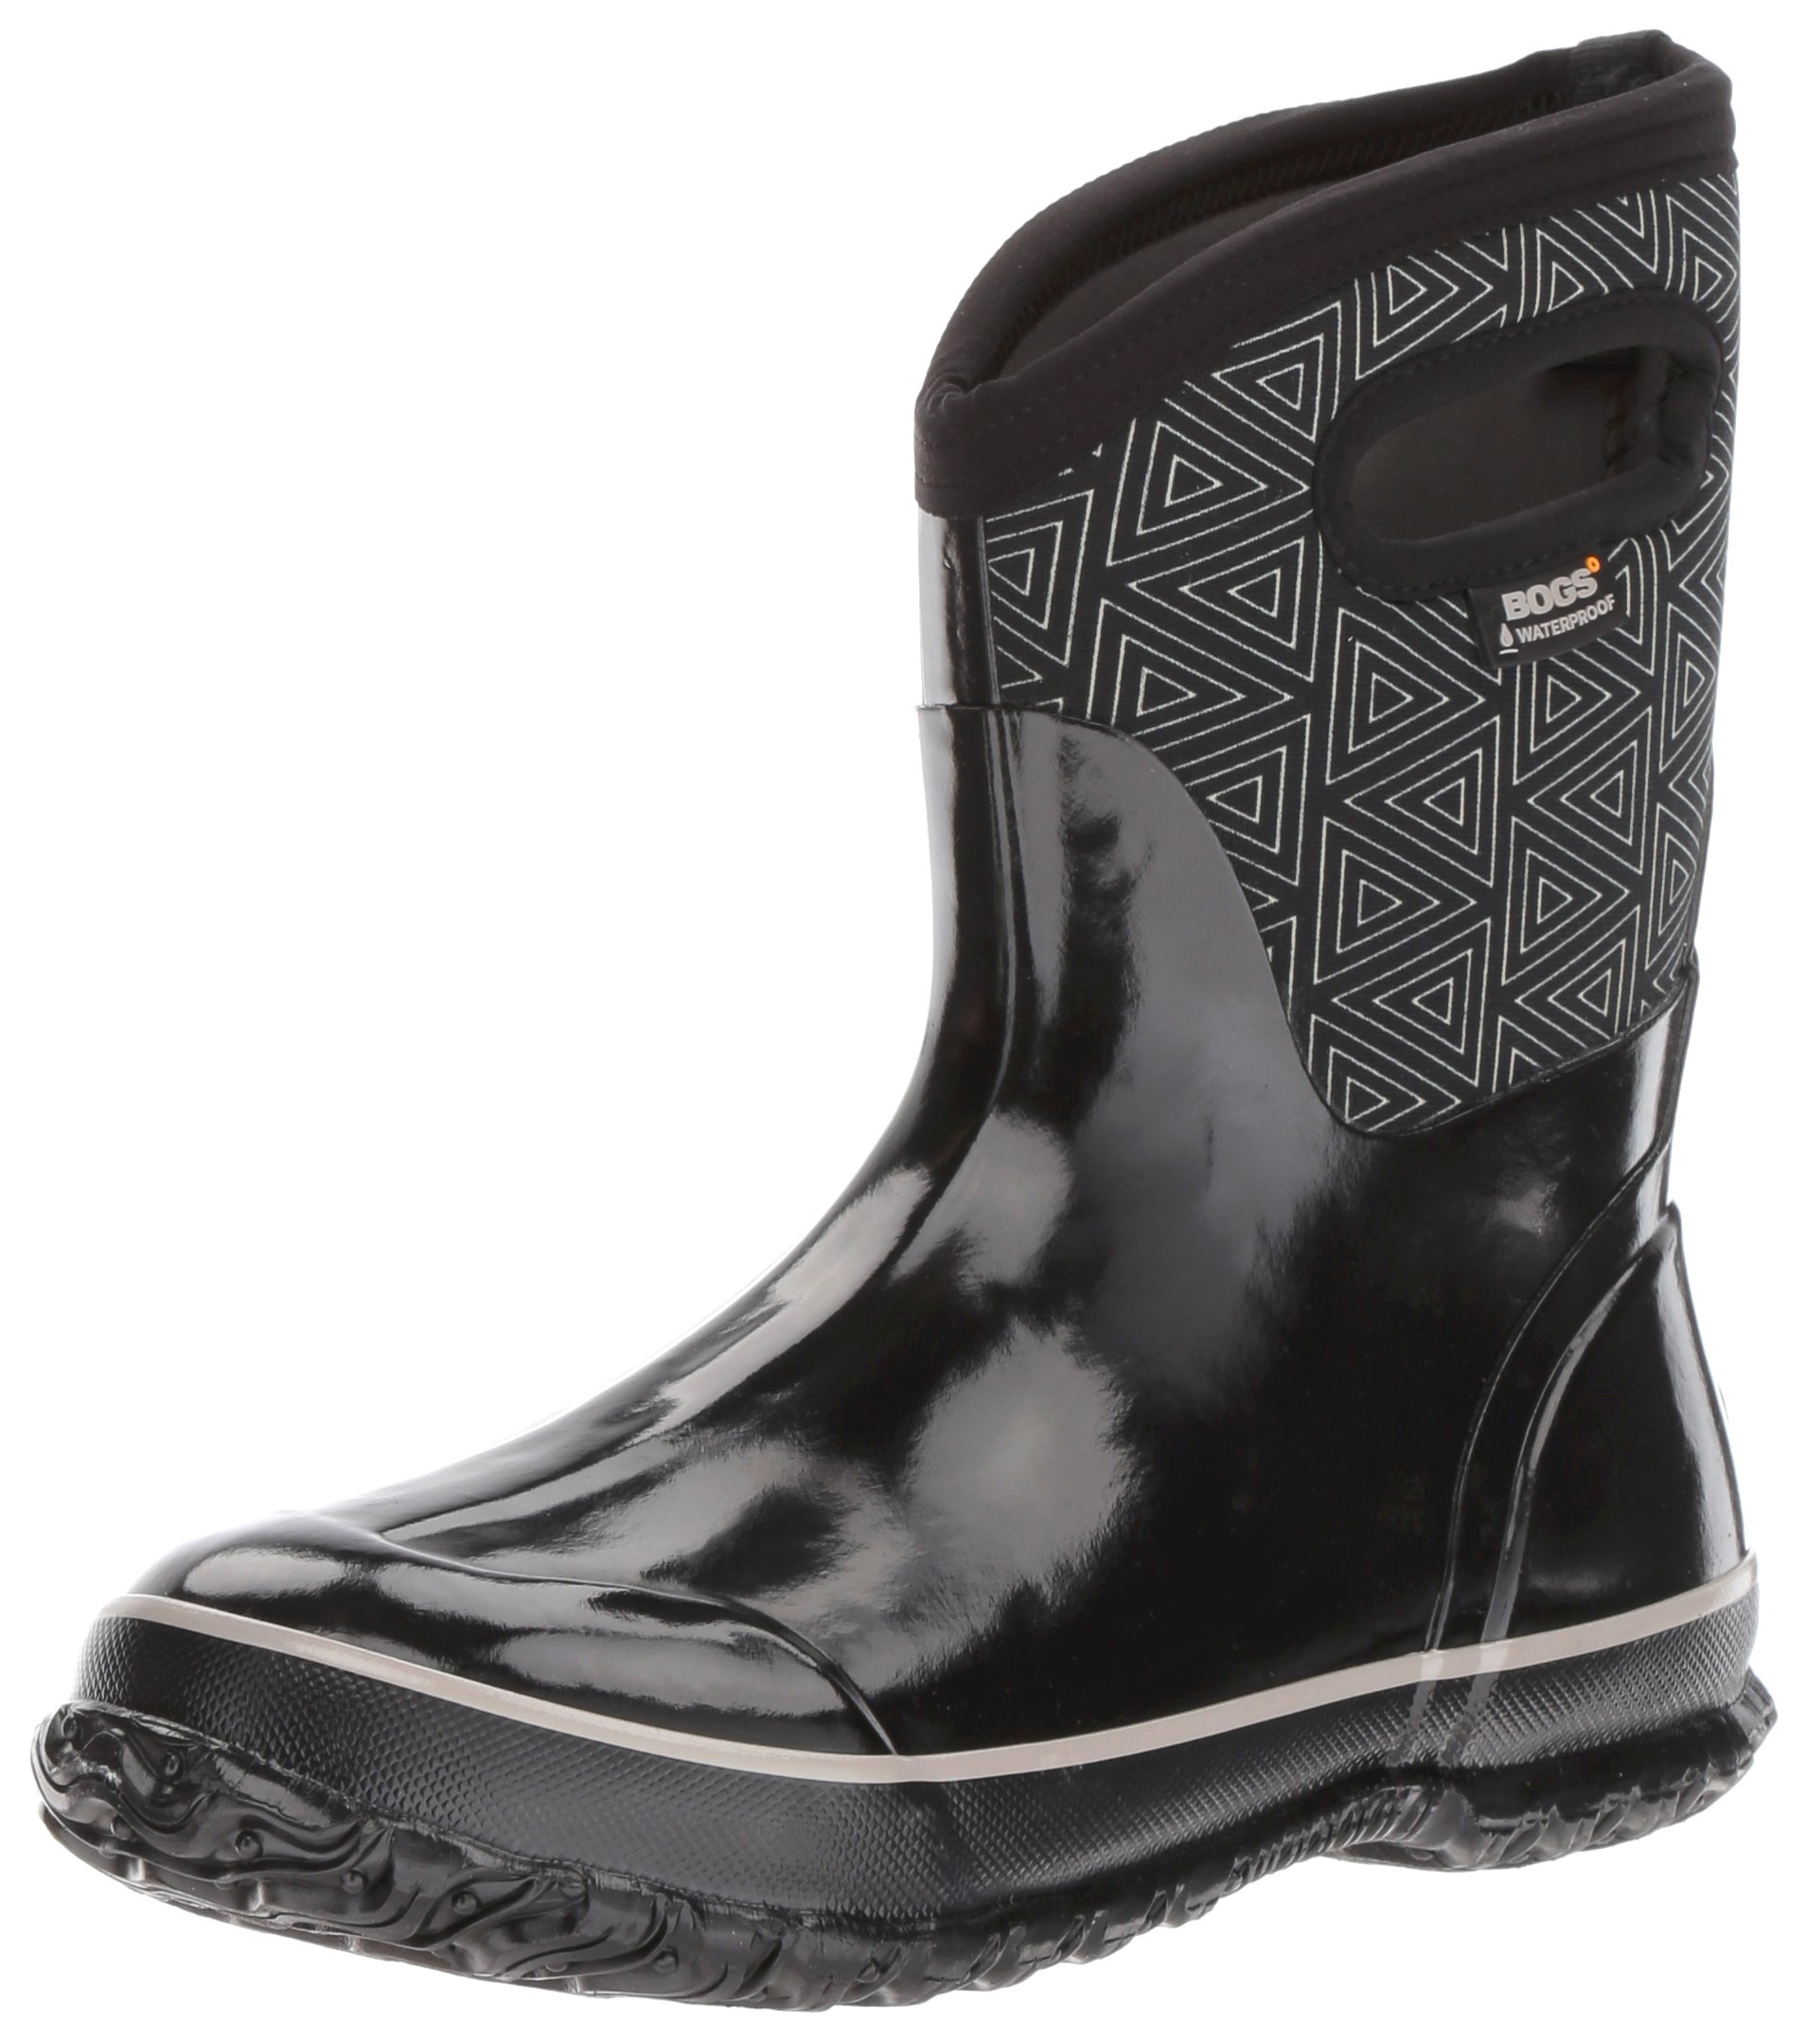 Bogs Women's Classic Triangles Mid Snow Boot, Black/Multi, 7 M US by Bogs